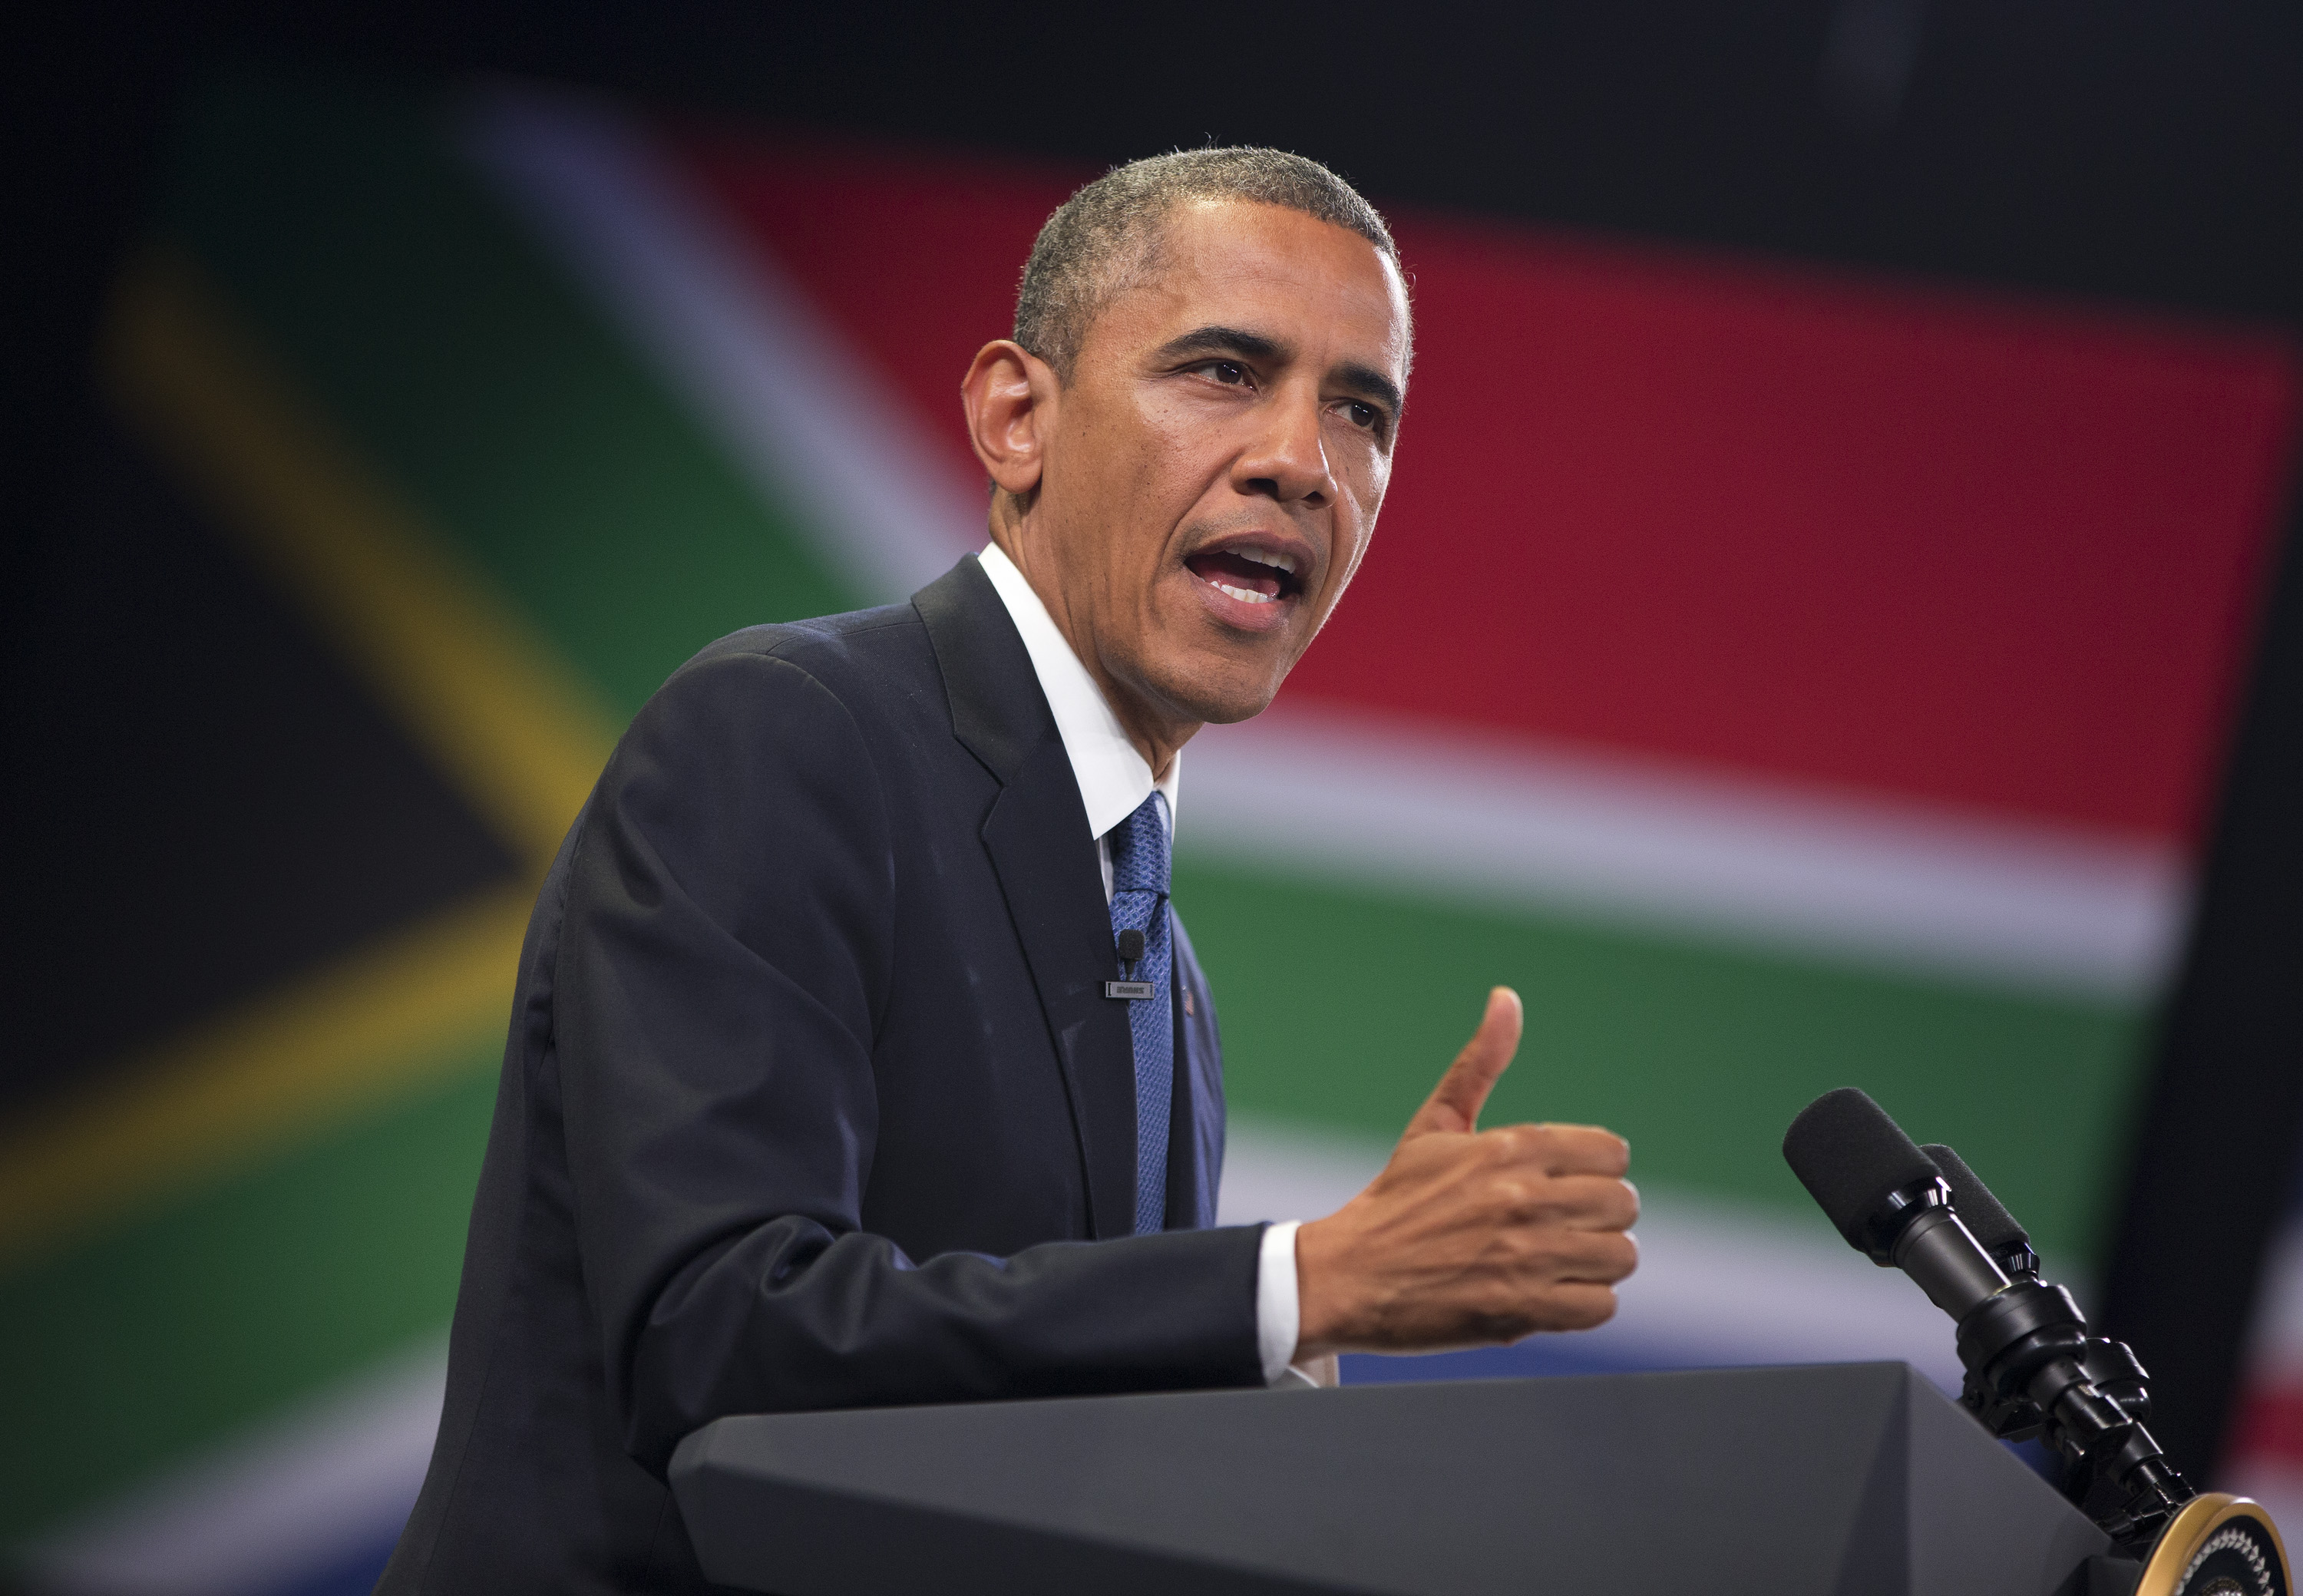 Obama's Africa Trip: A Renewed Commitment to US-African Relations